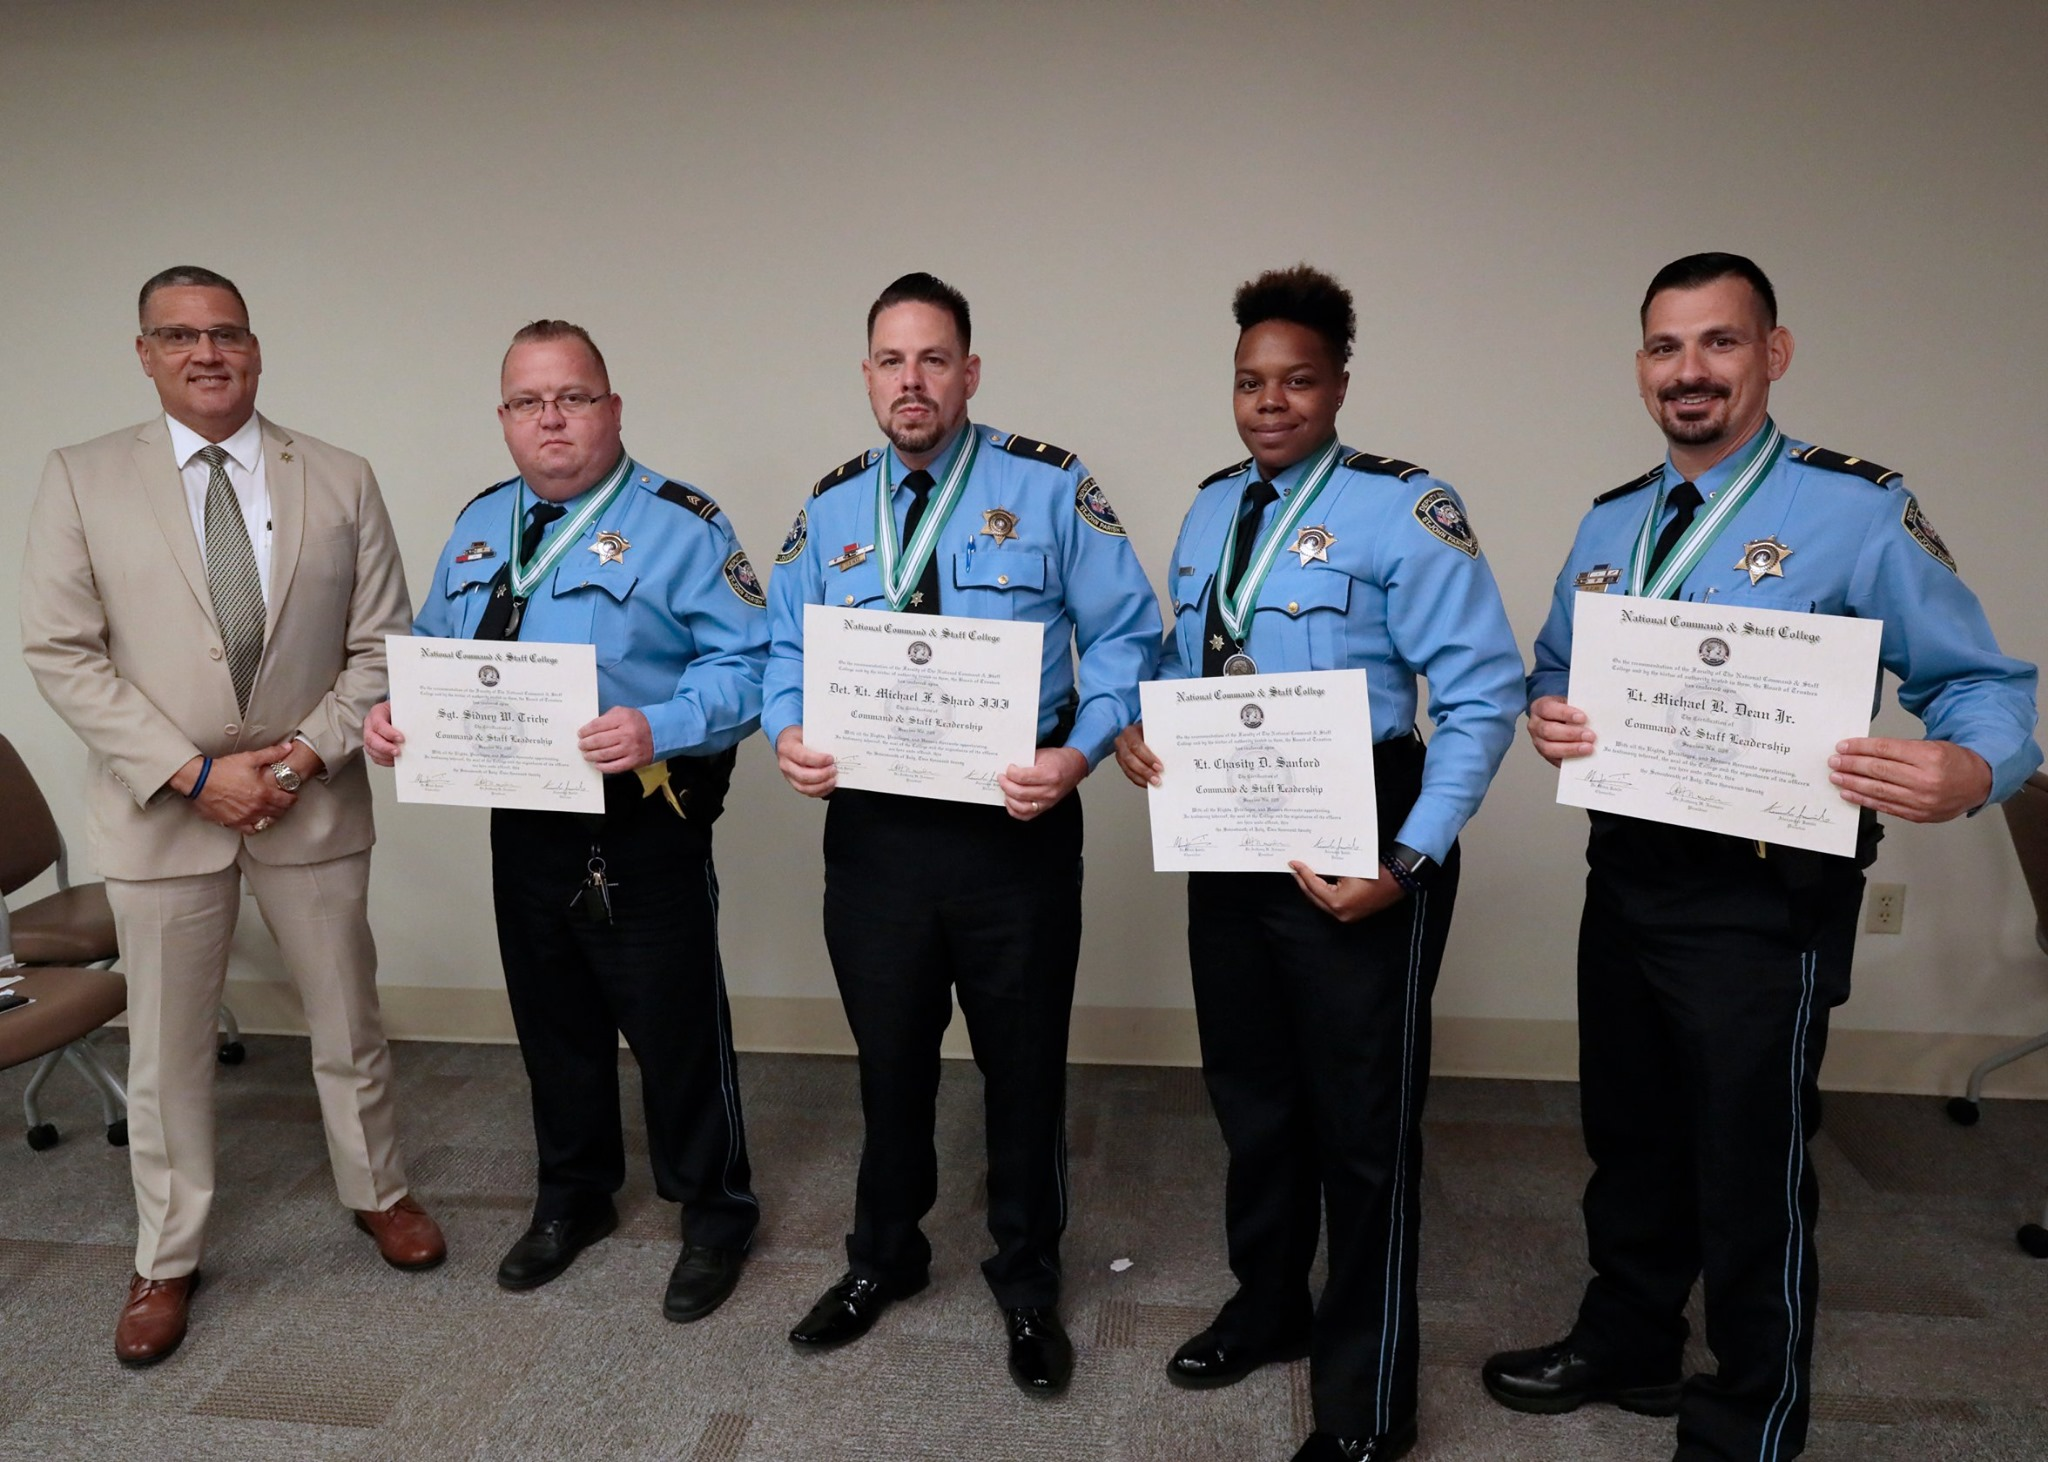 Officers Graduate From Command and Staff College